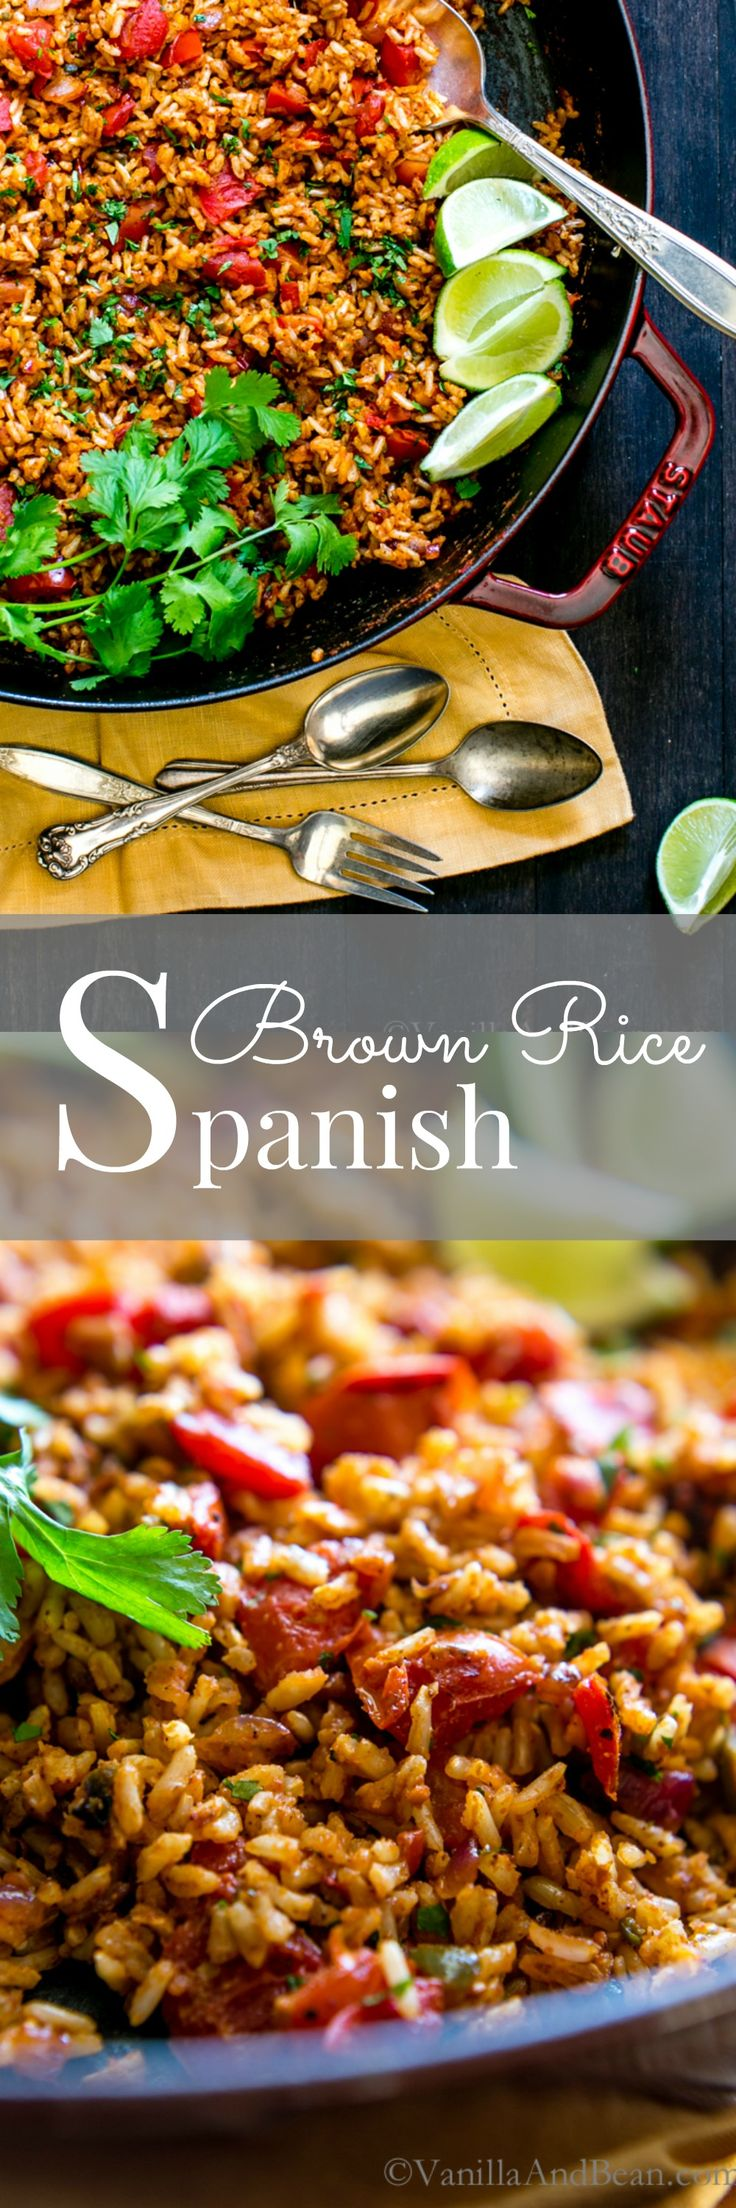 Paired with tacos.... a perfect meal! With a bit of meal prep, it's ready in no time flat! Packed with flavor, you're going to love this!